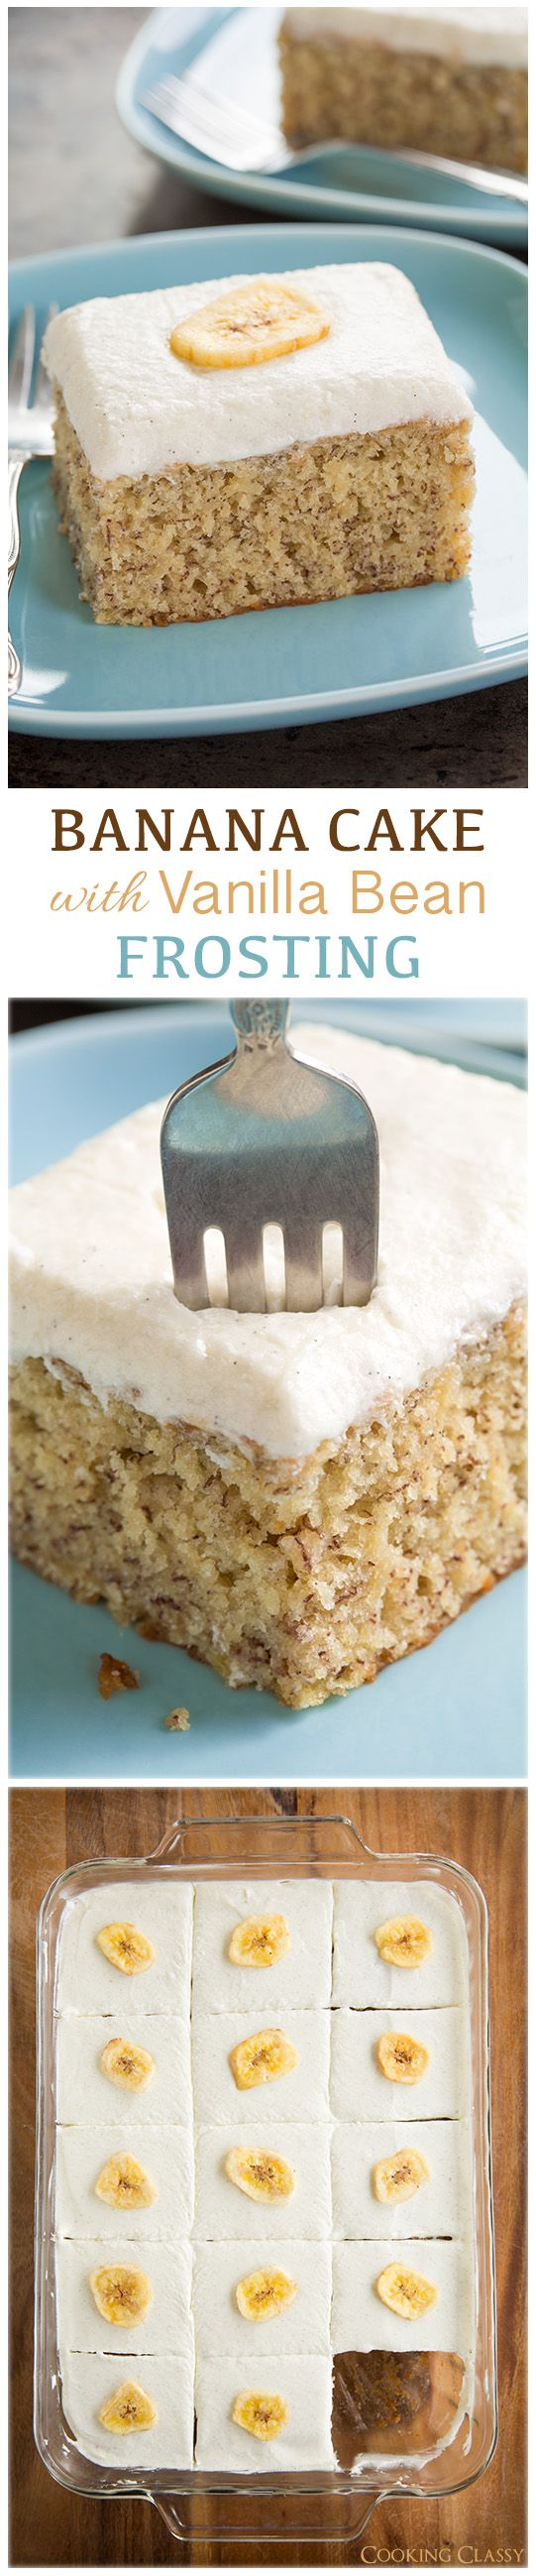 To Die For Banana Cake with Vanilla Bean Frosting - this cake is completely irresistible!! SO amazingly good! @cookingclassy